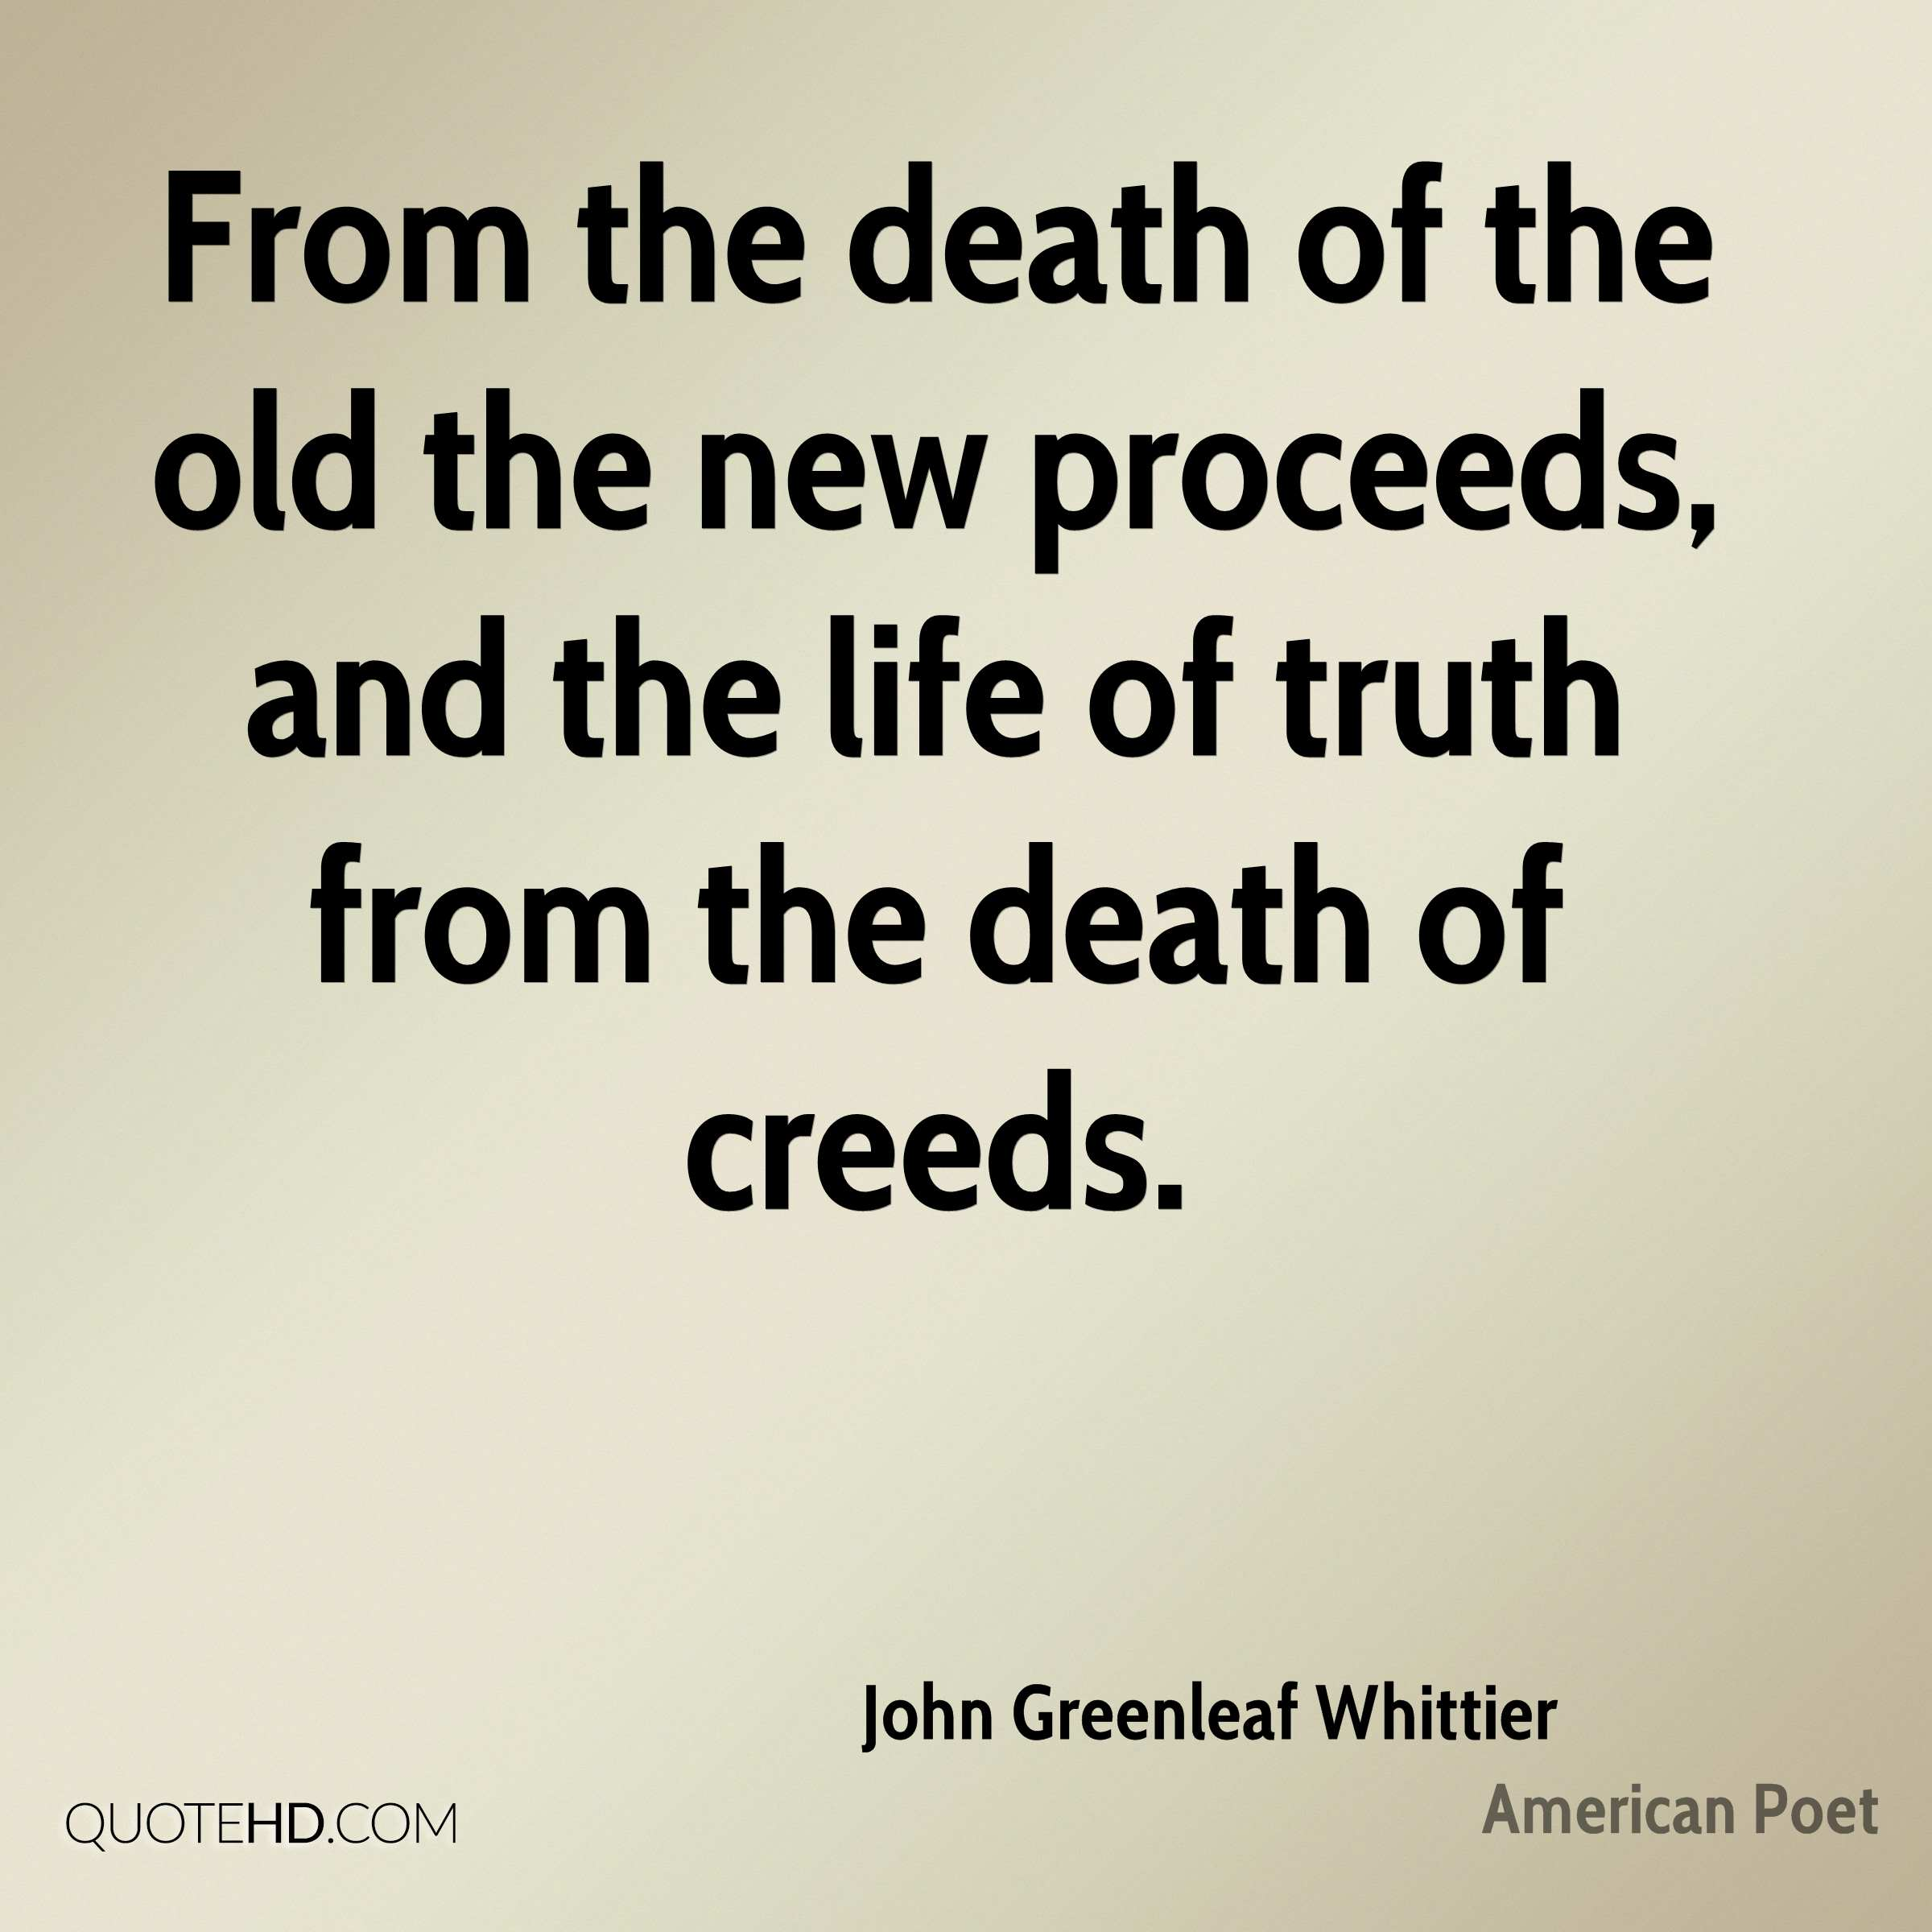 From the death of the old the new proceeds, and the life of truth from the death of creeds.